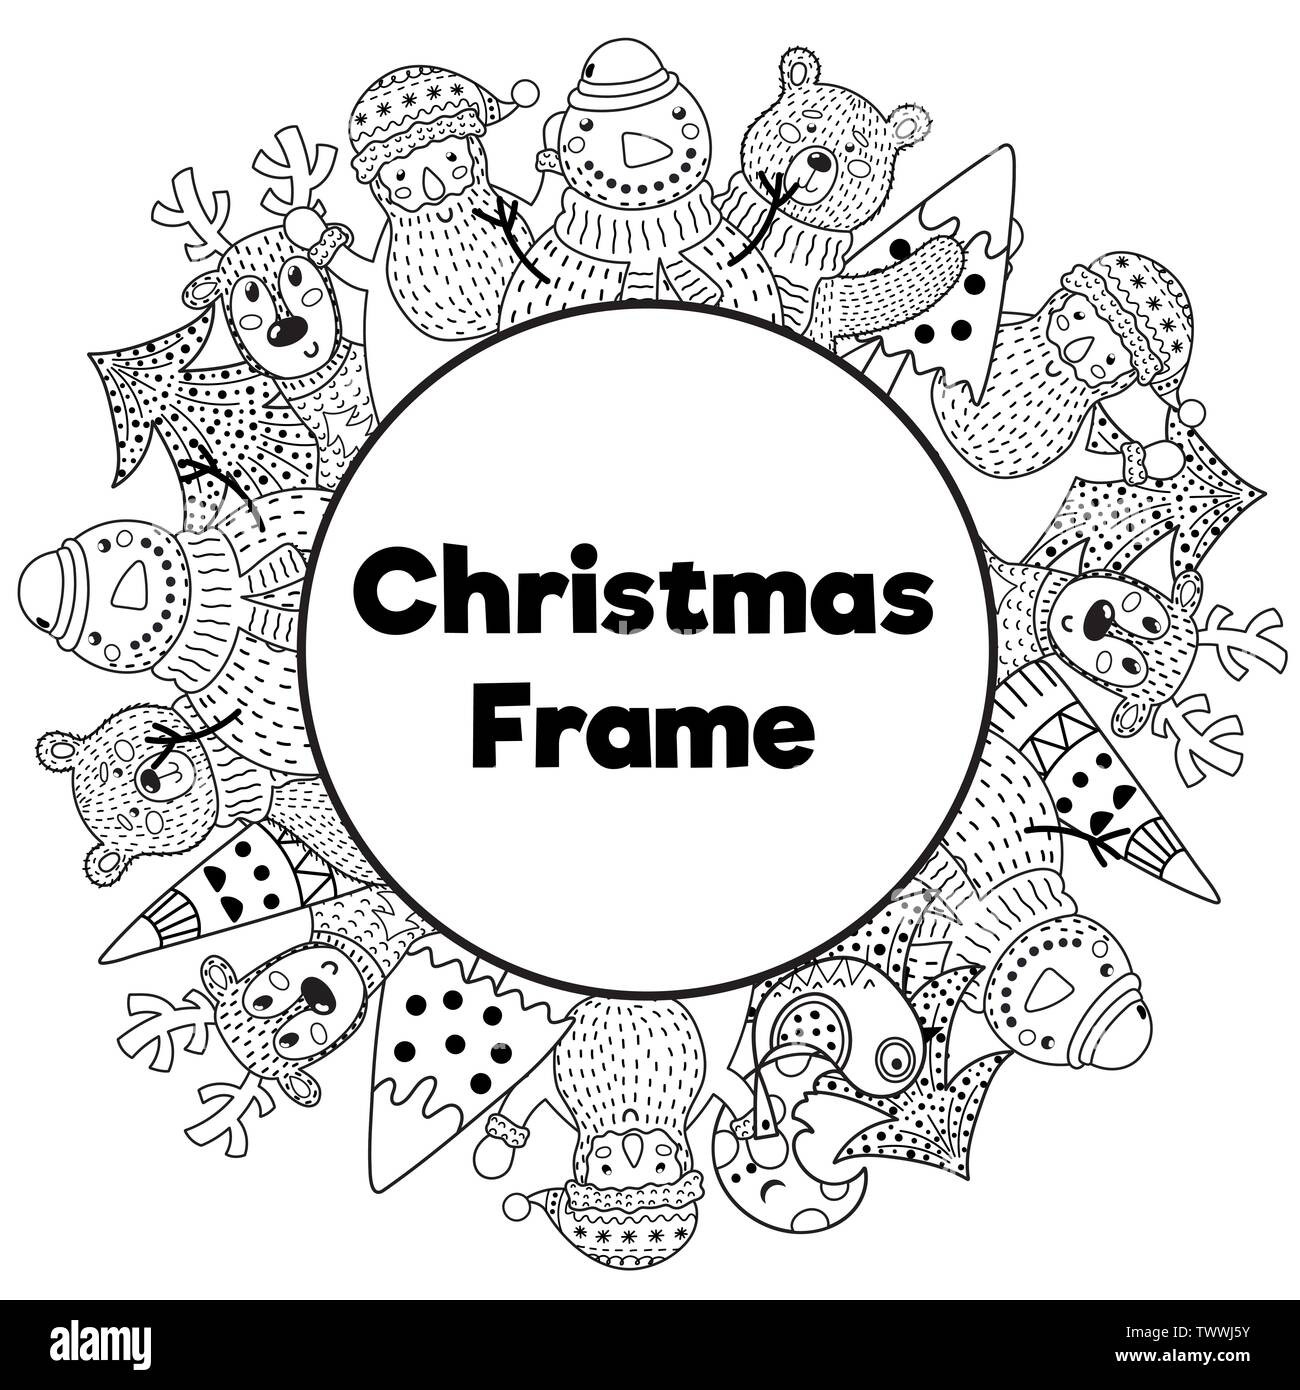 Black and white Christmas frame in coloring page style. Place for your text. Snowman, Santa, deer, bear and Christmas tree. Vector illustration Stock Vector